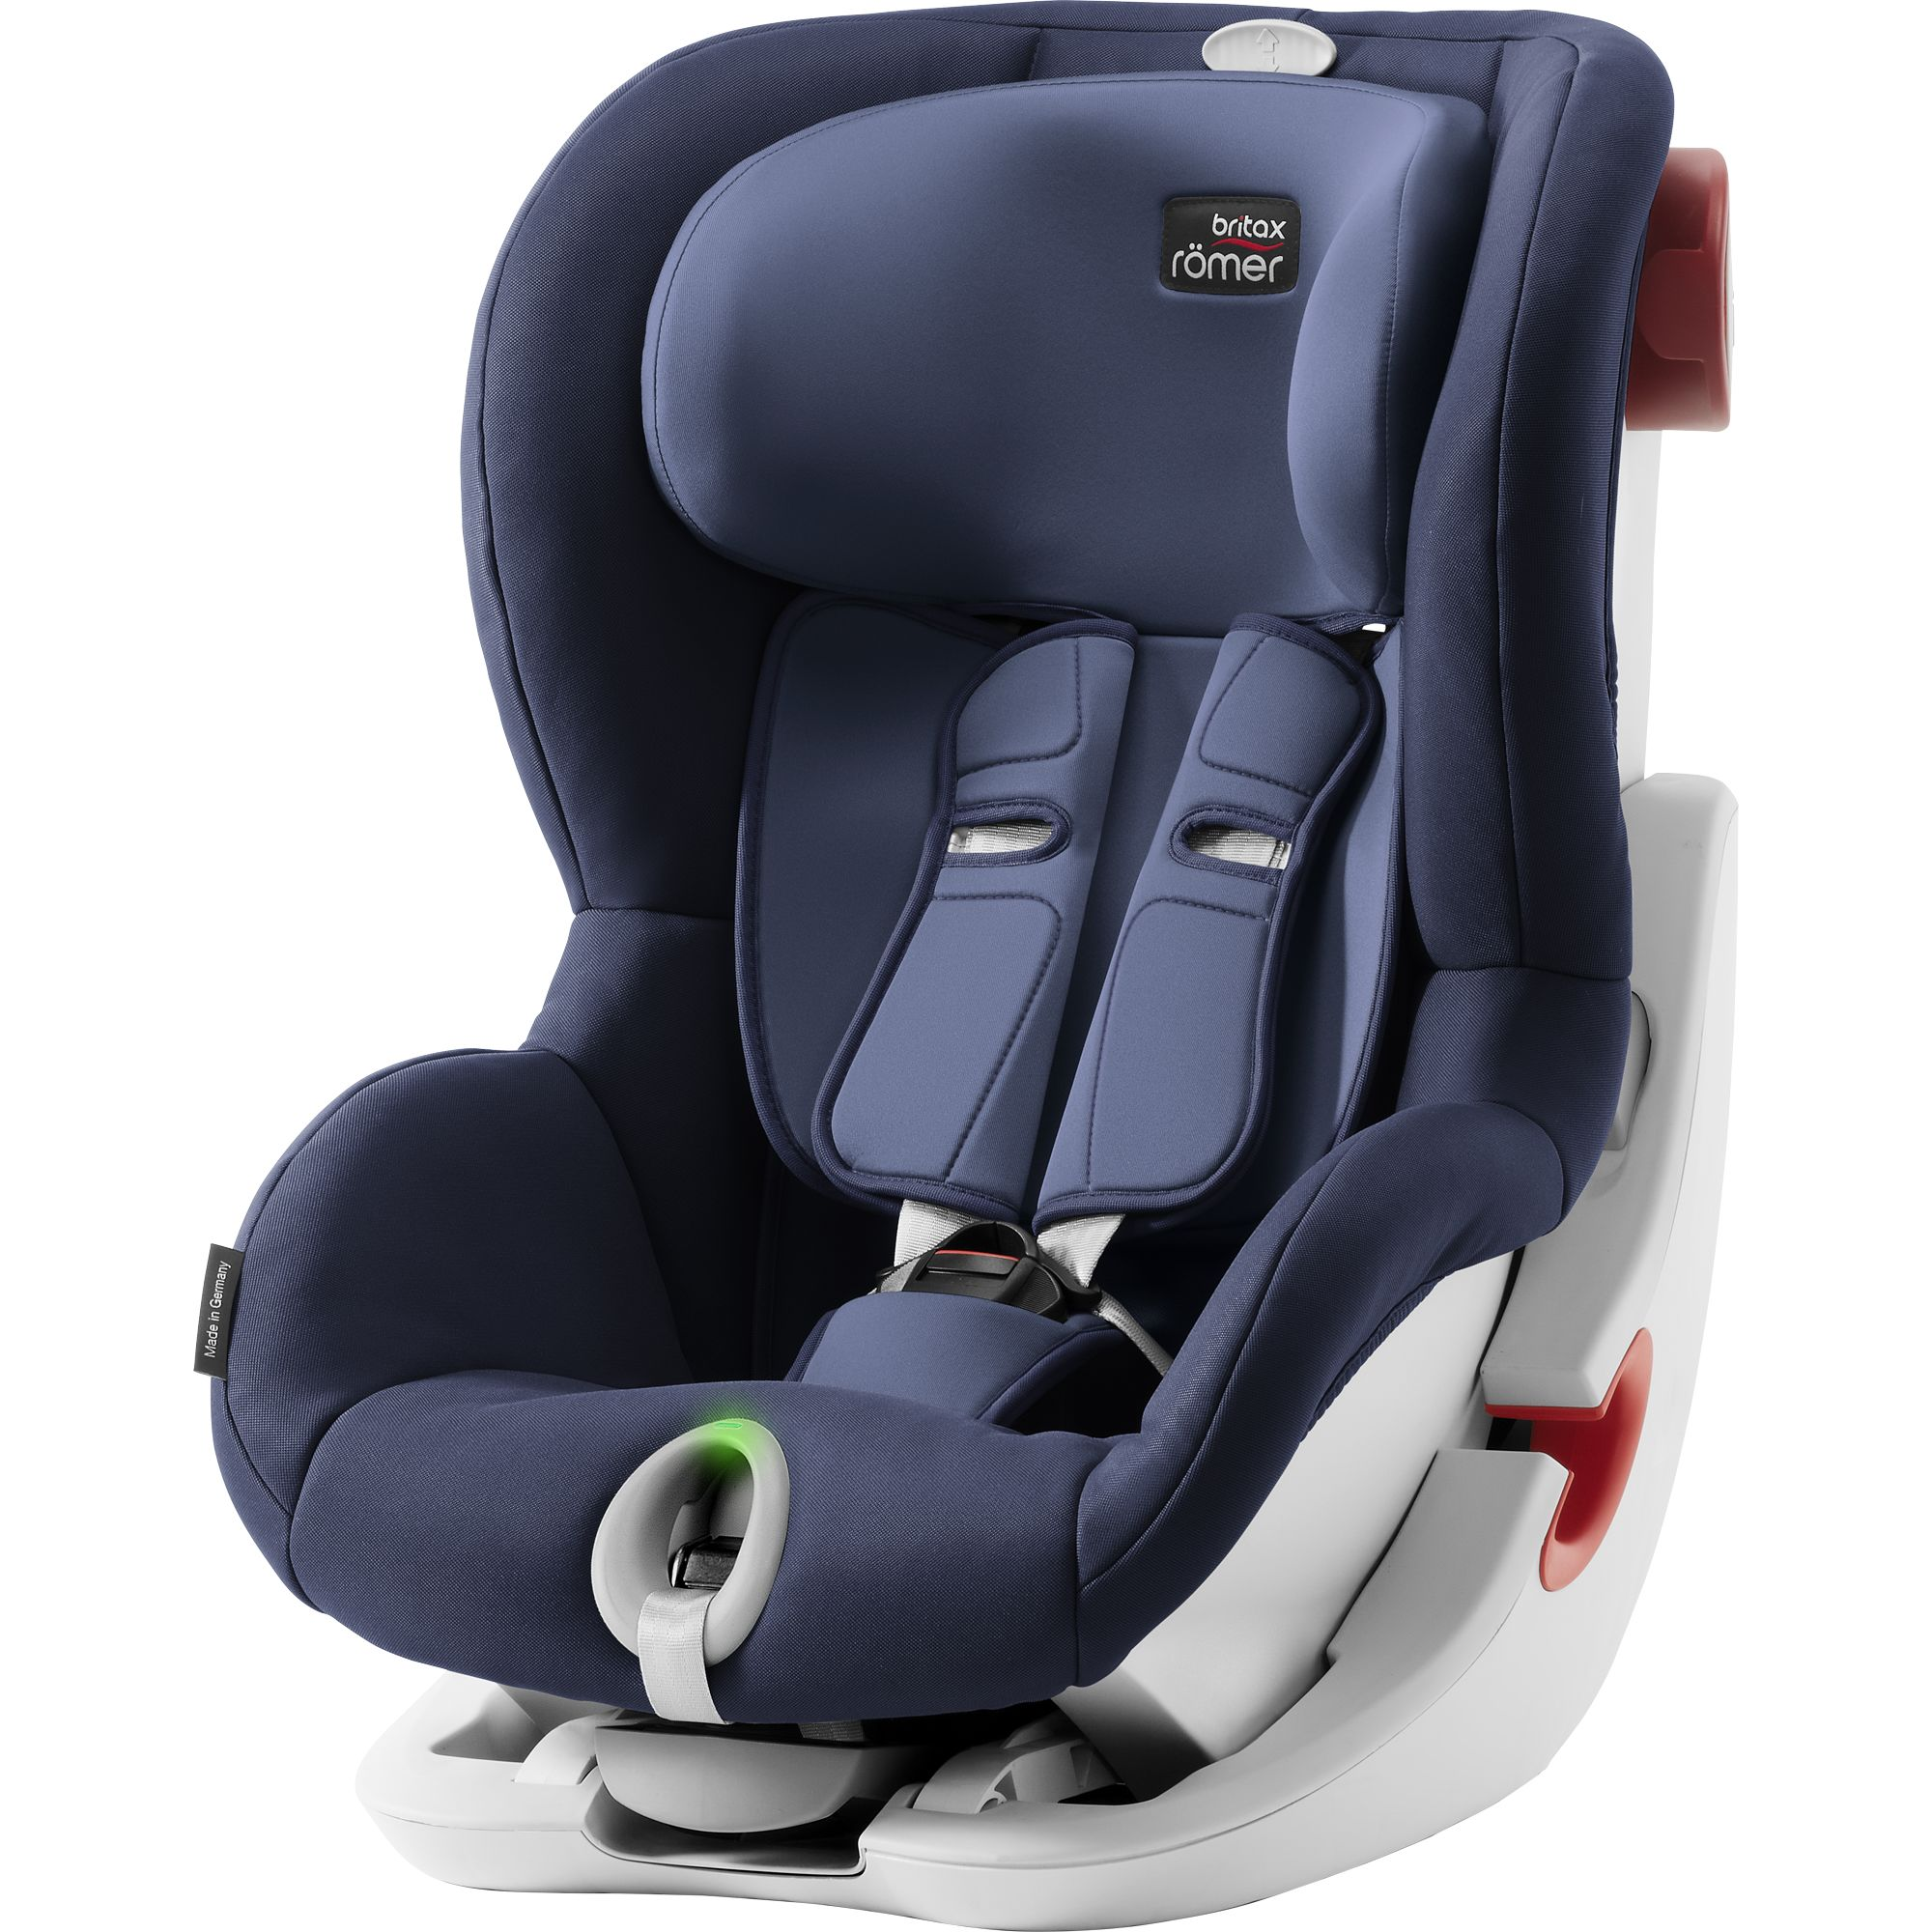 Детское автокресло Britax Roemer King II LS Moonlight Blue Trendline, синий